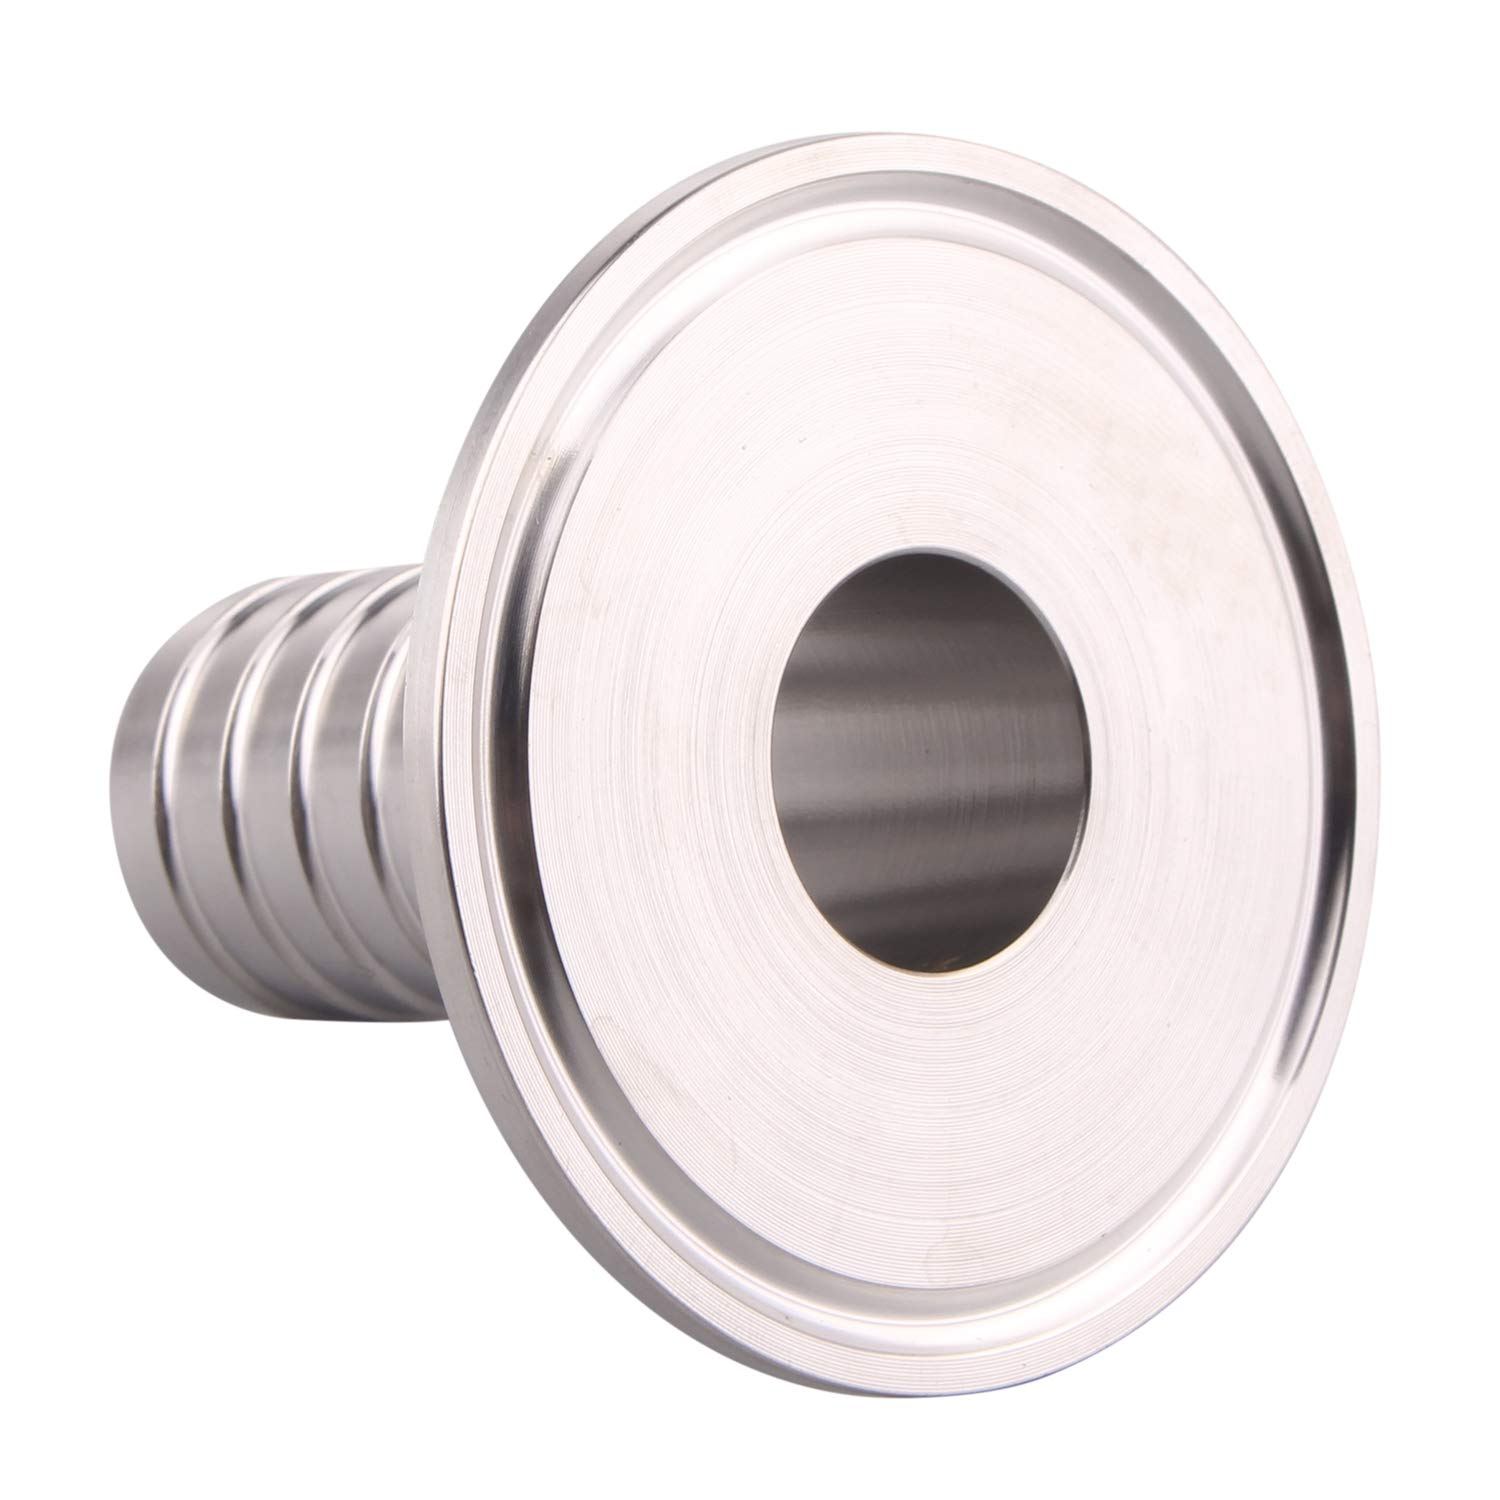 Hose Barb Fittings,2 Tri Clamp to 5//8 Hose Barbed Adapter SUS304 Sanitary Hose Pipe Fitting, Barb Hose Adapter